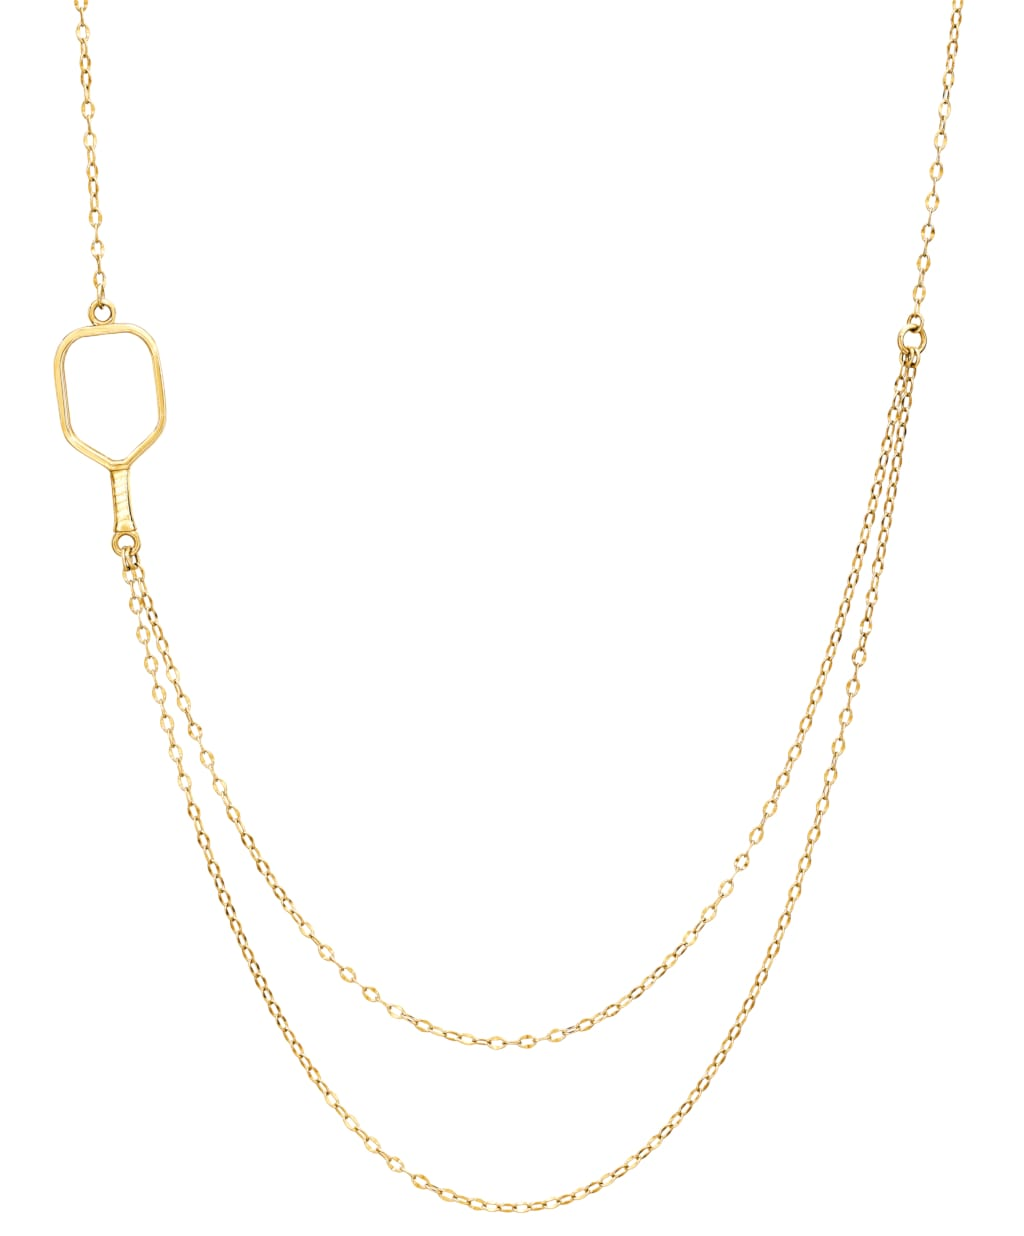 Pickleball Necklace | 2 Chain Offset Open Paddle in Yellow Gold